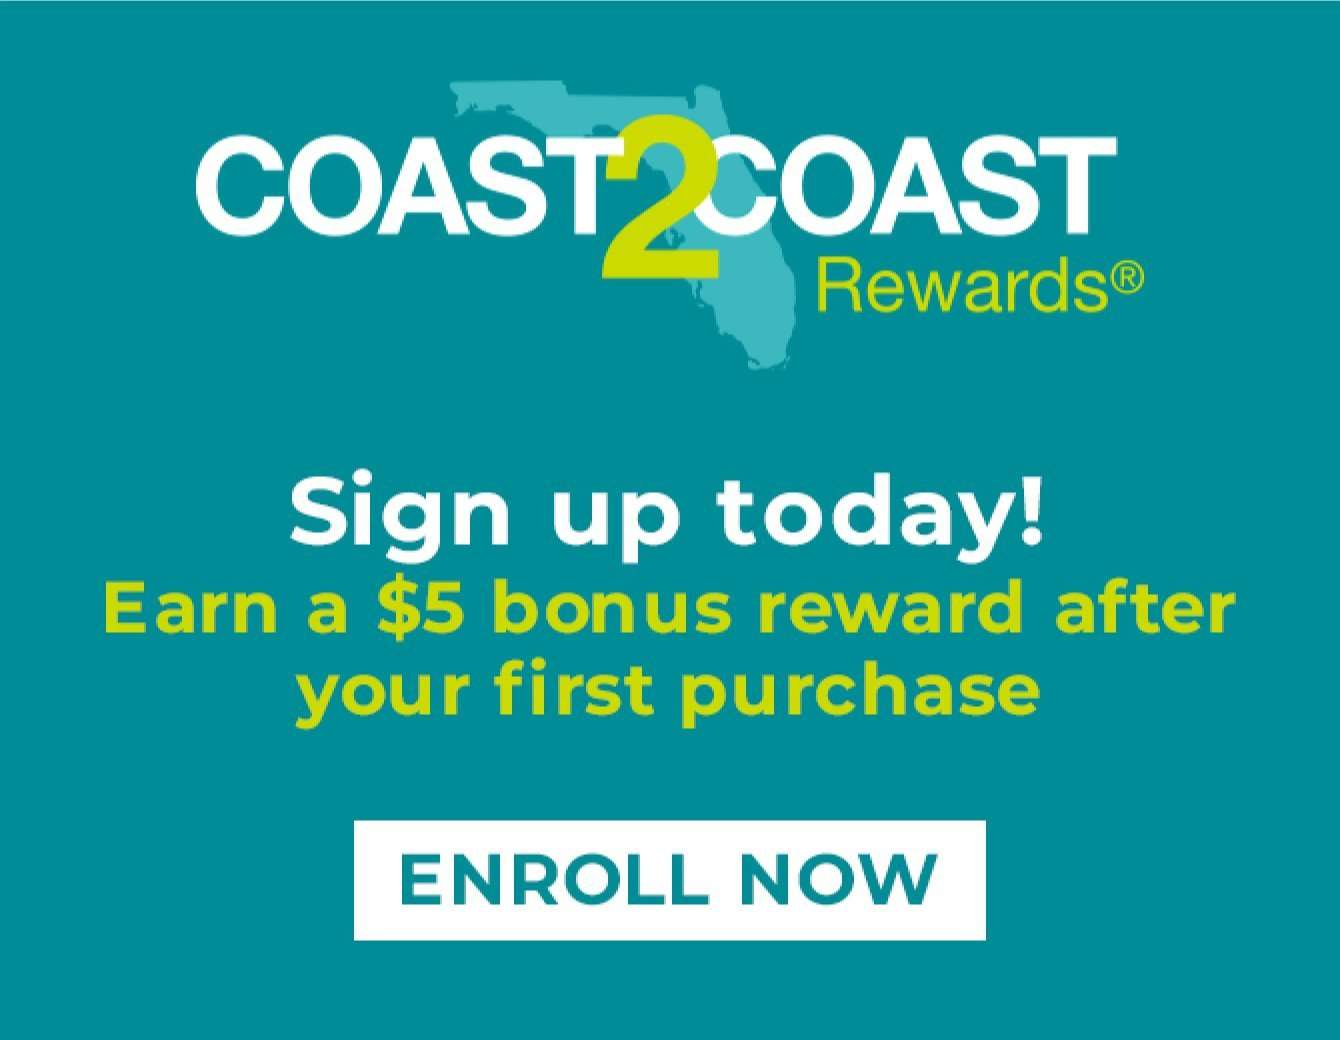 Coast2Coast Rewards - Sign up today! Earn a $5 bonus reward after your first purchase - Enroll Now